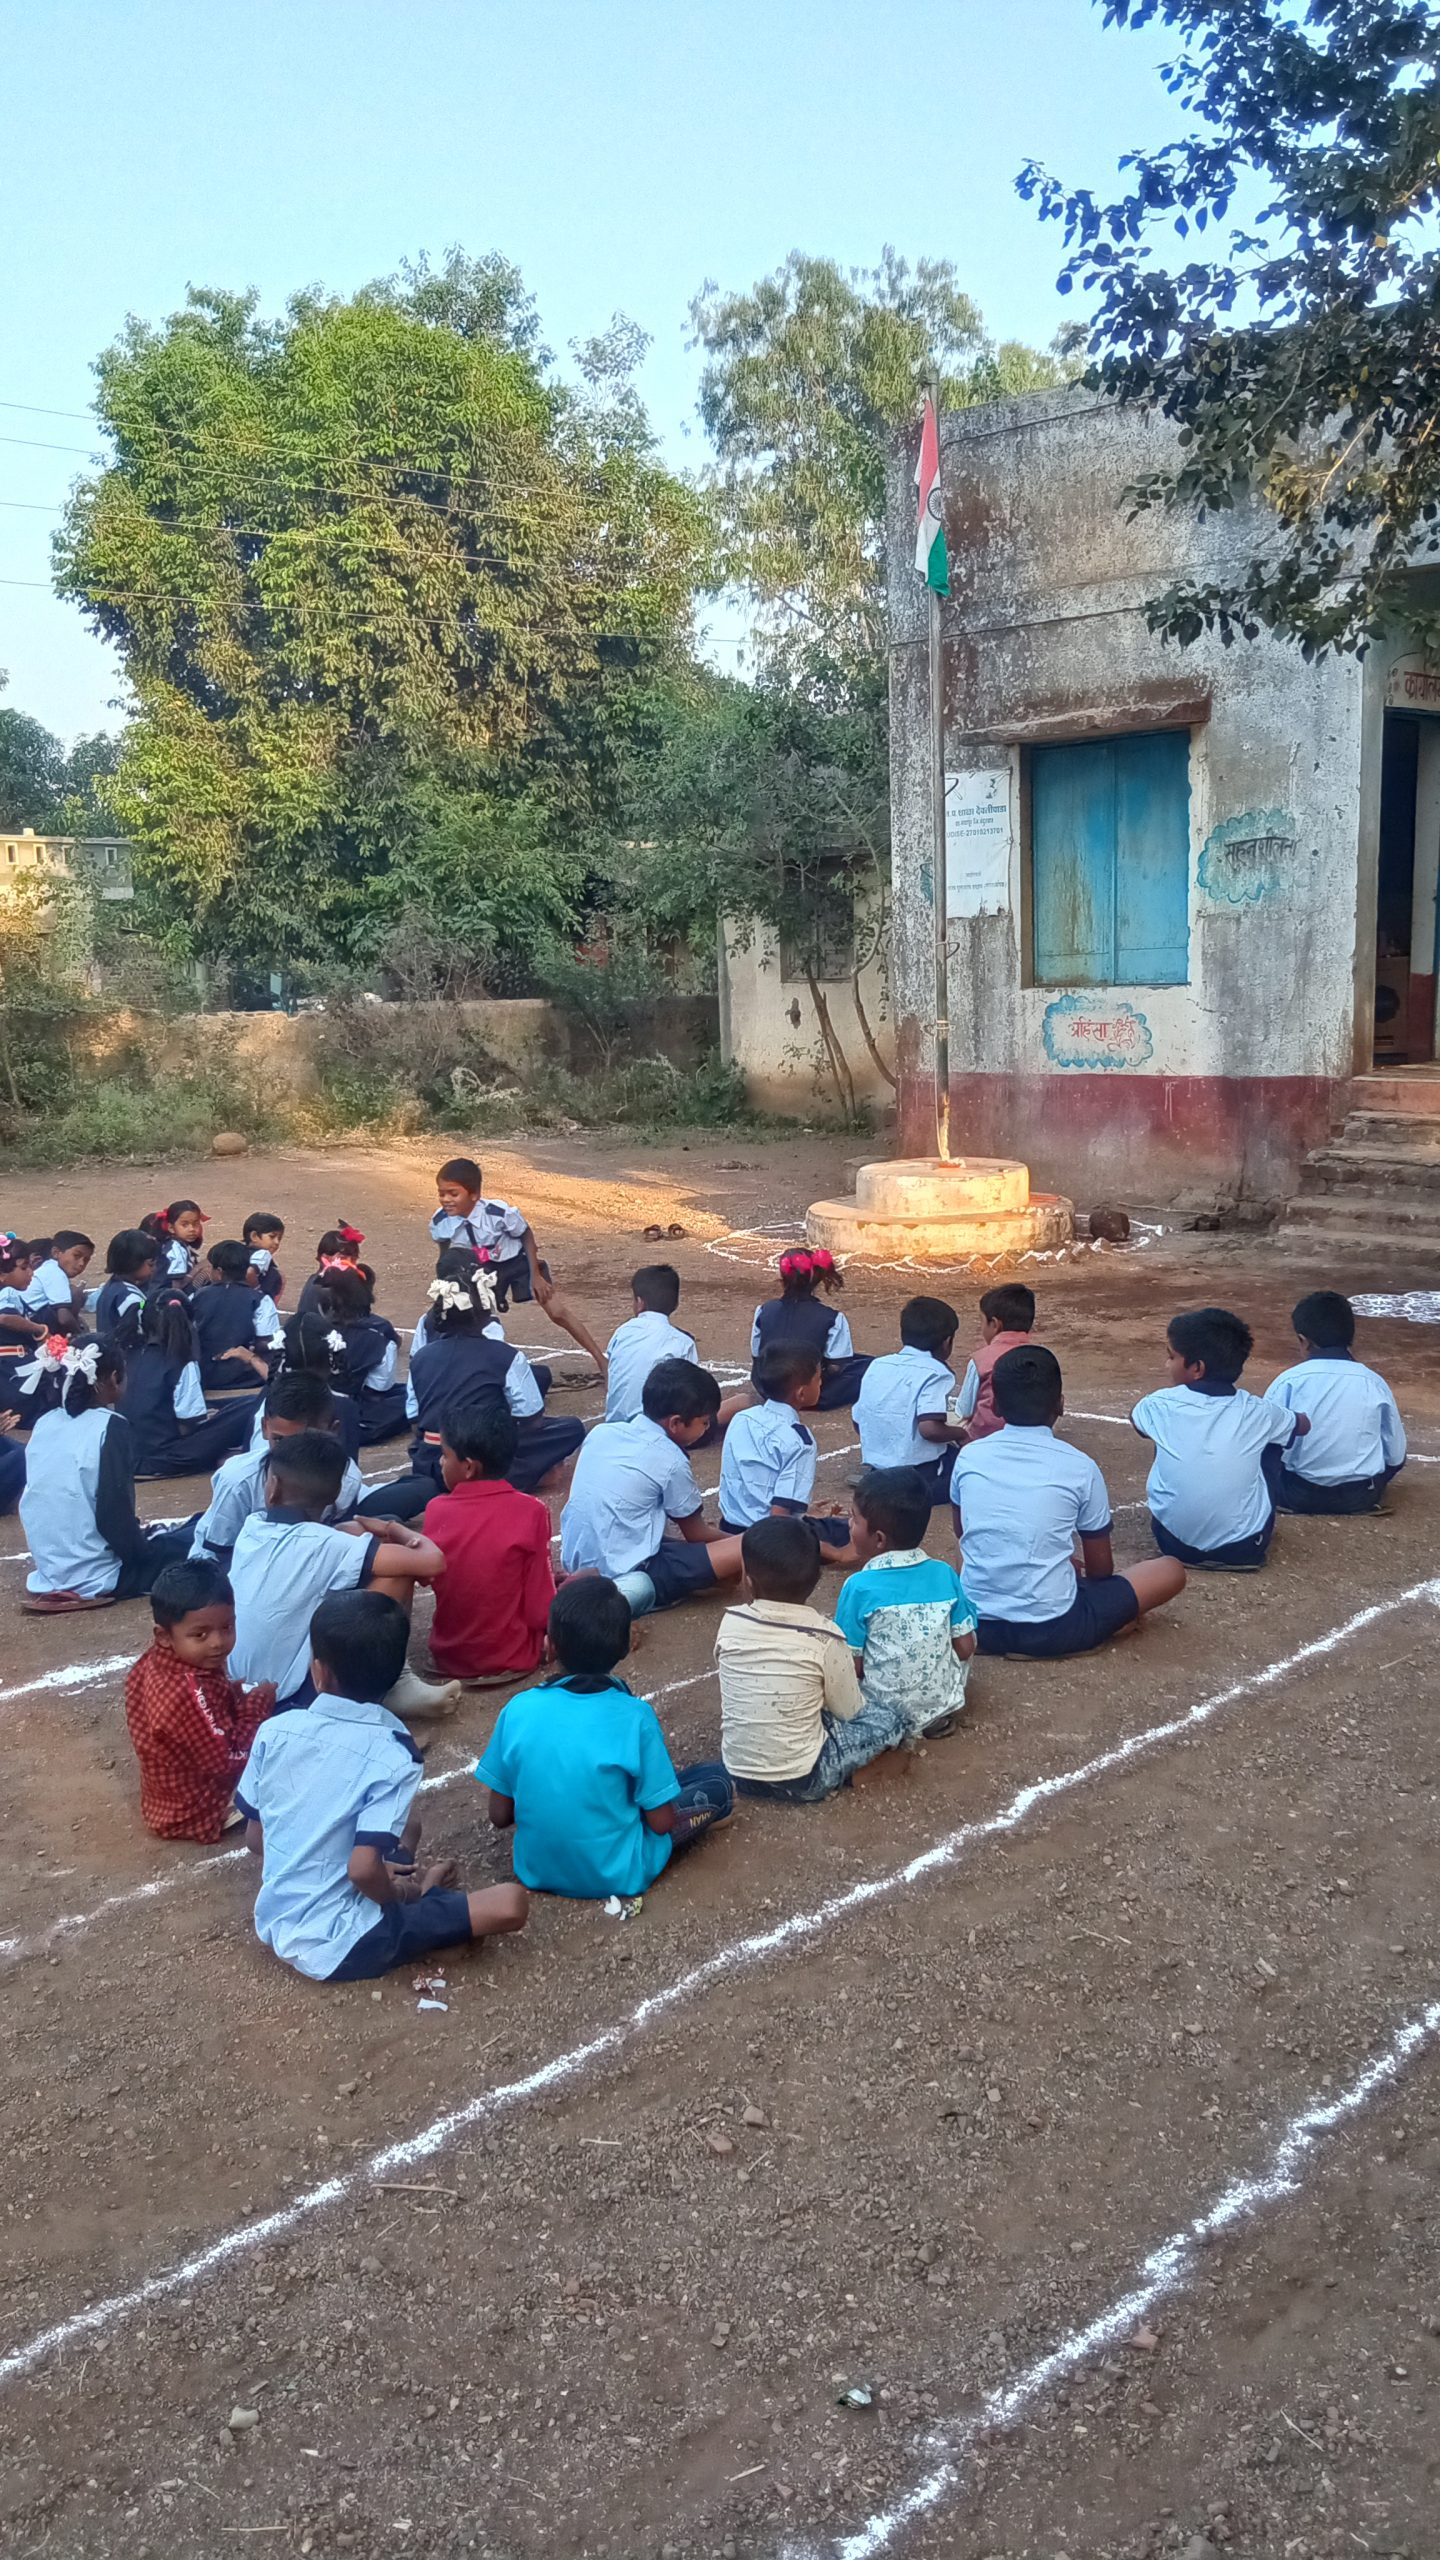 School students sitting on the ground